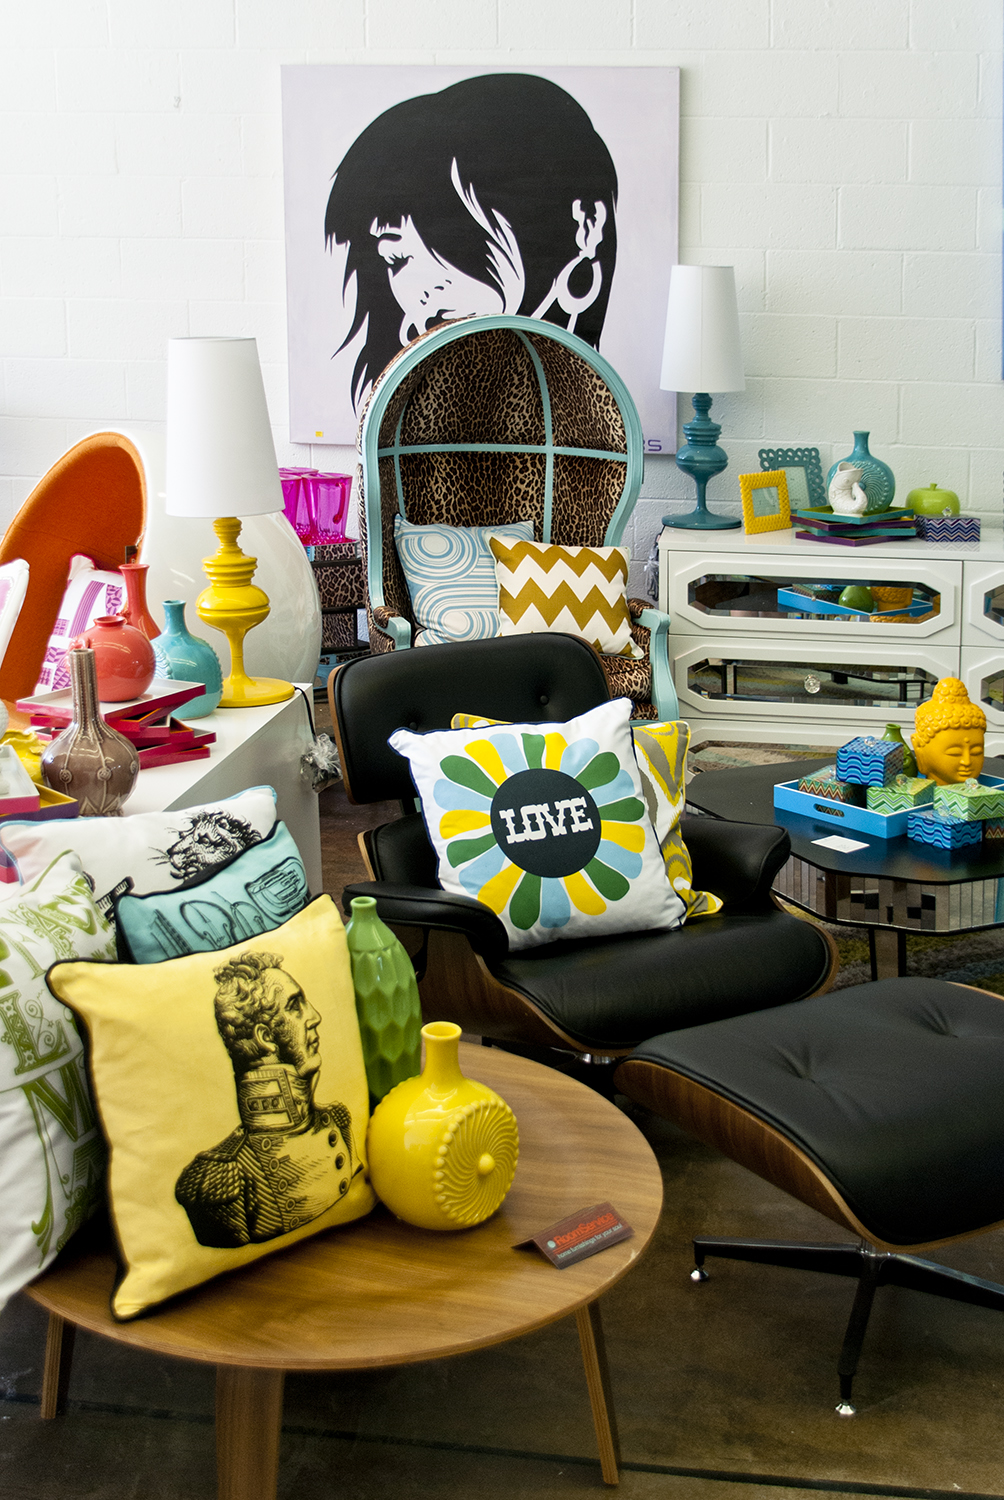 Charming As You Can See, Our Modern Designs Are Full Of Color And Fun Fabrics! If  You Are Visiting Palm Springs For A Mini Getaway Or Relocating To This  Amazing Gem, ...